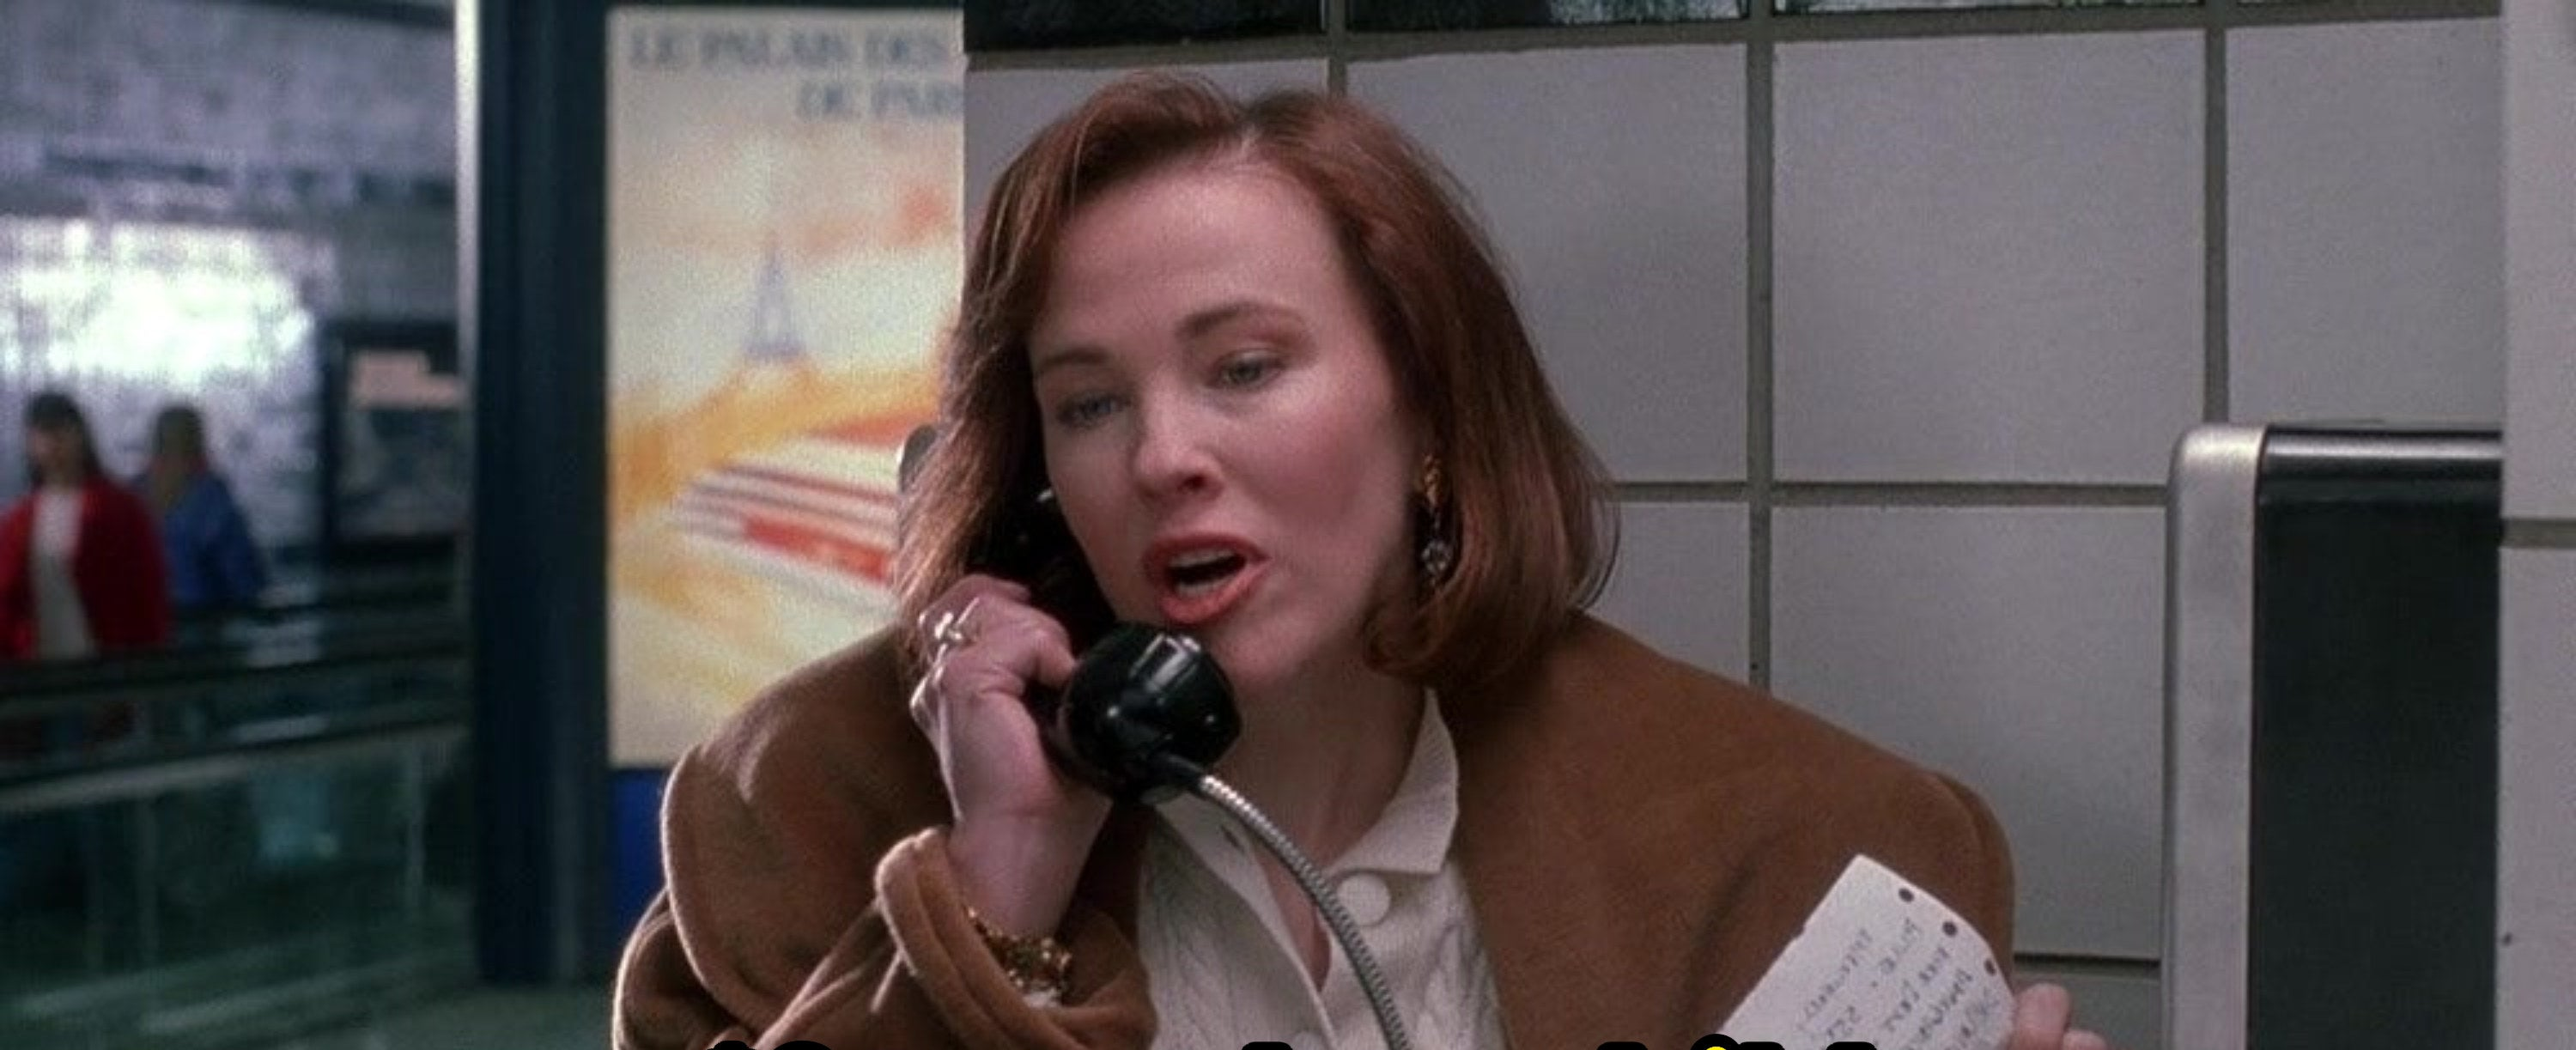 The mom from Home Alone realizing she left Kevin at home.